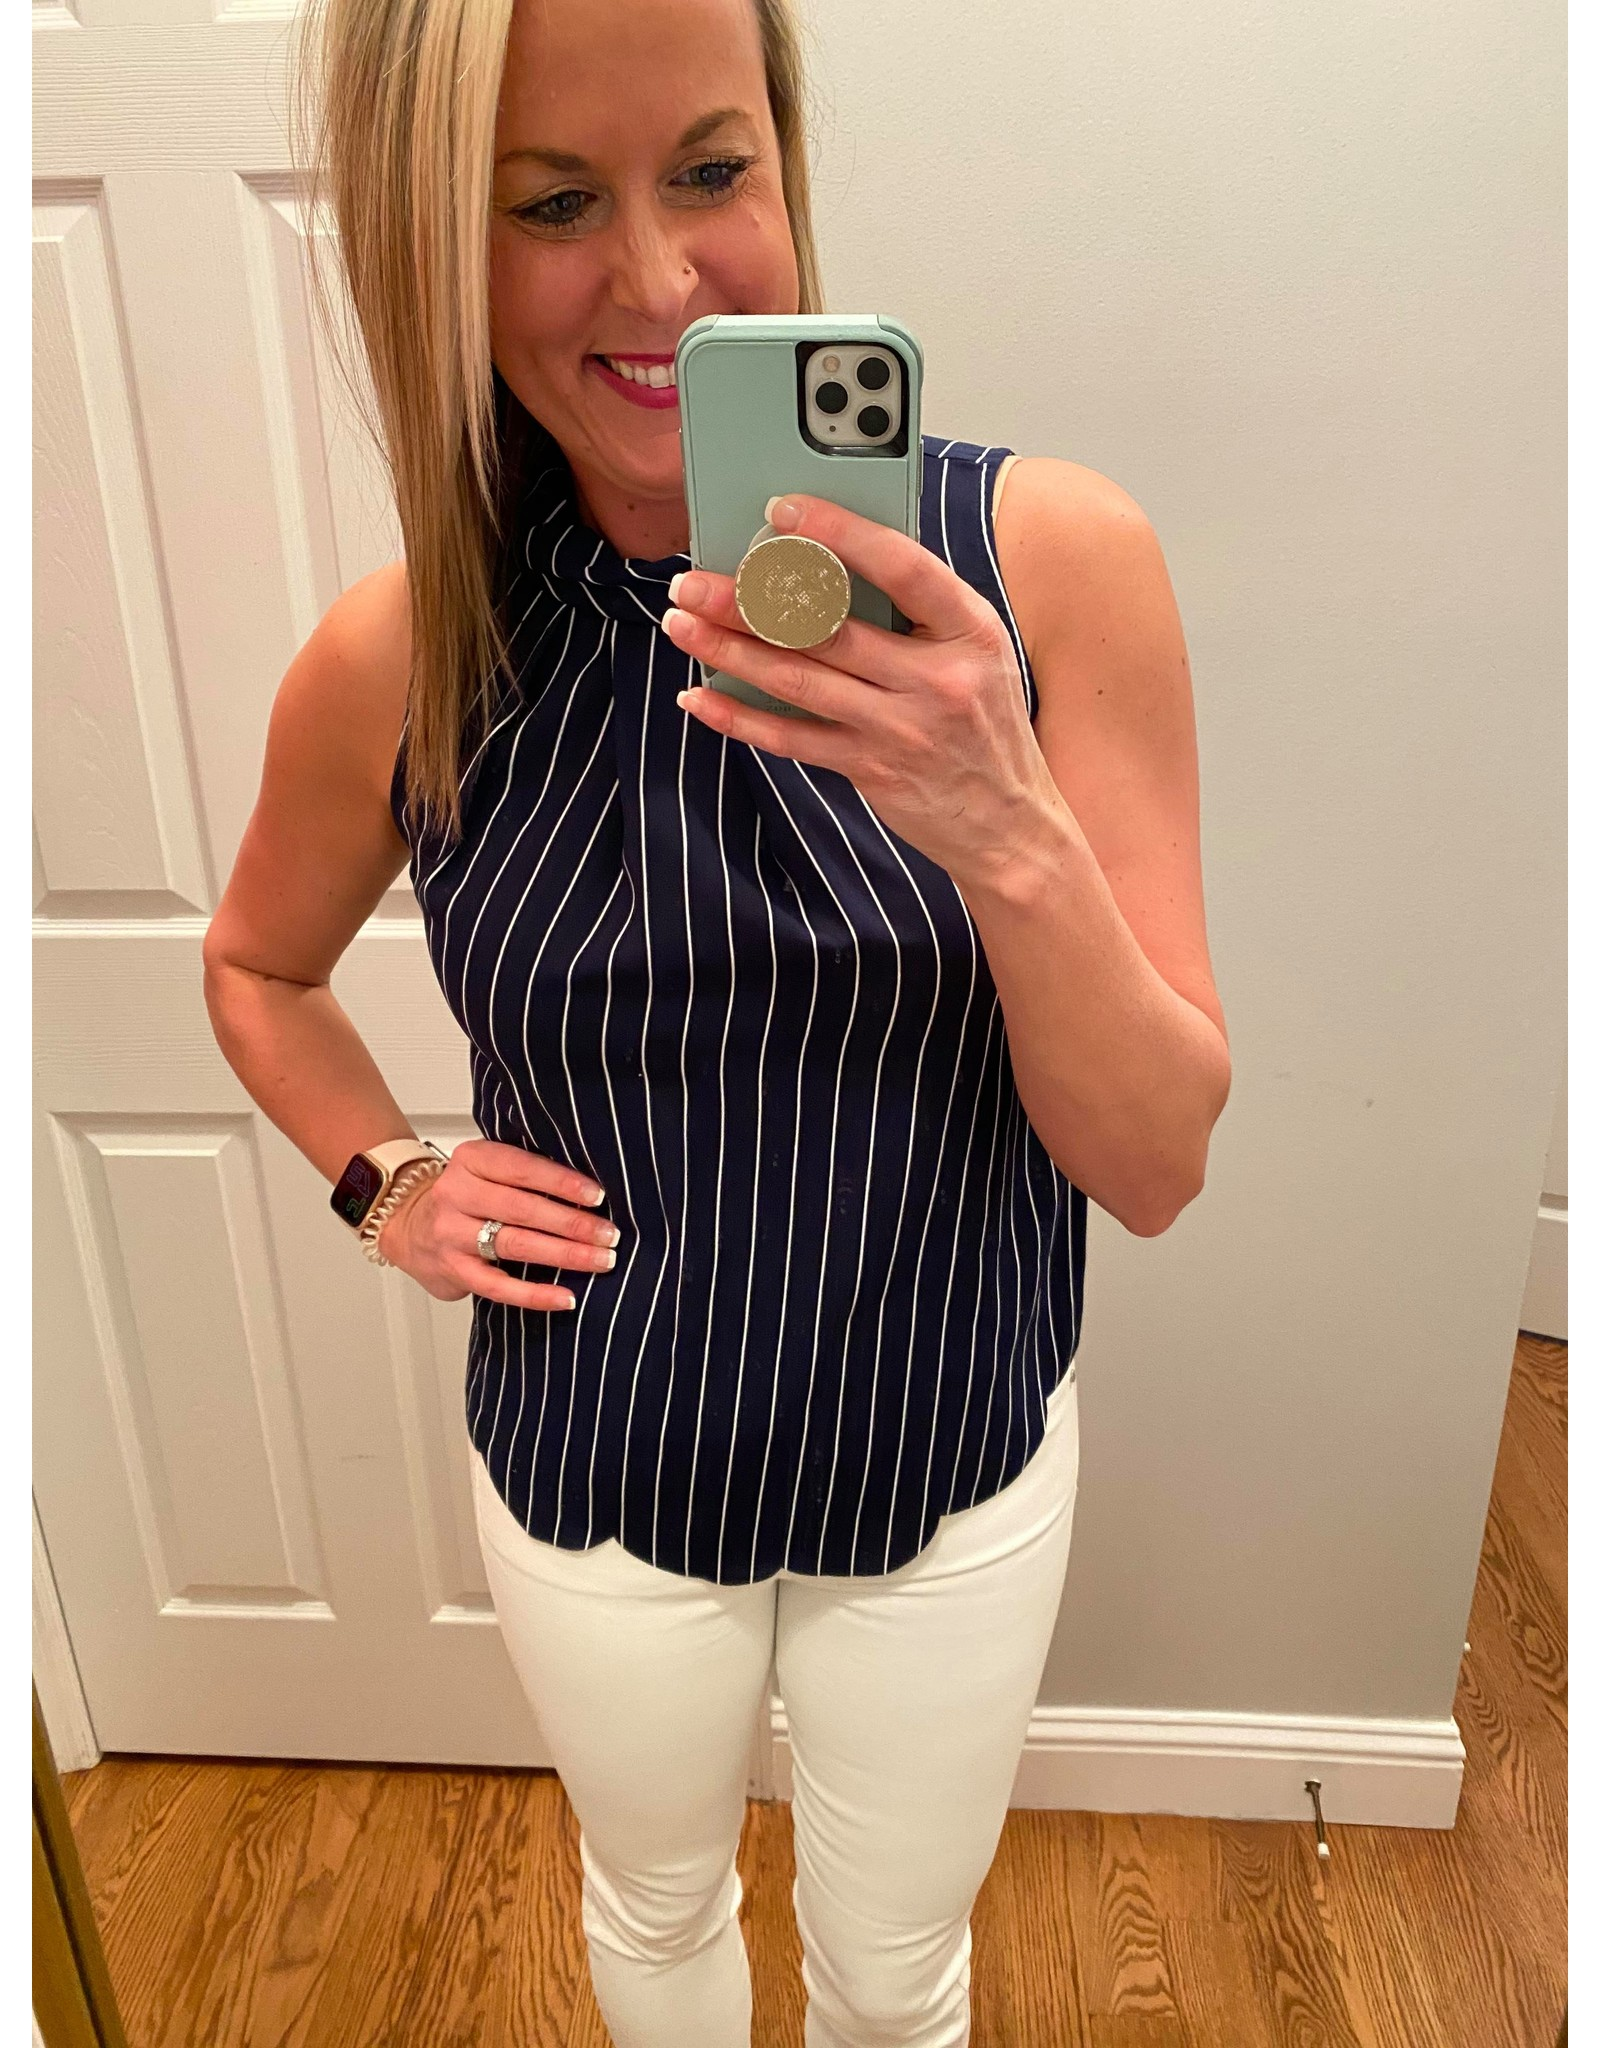 Westmoon Sleeveless Stripes with Edge Scallop Navy